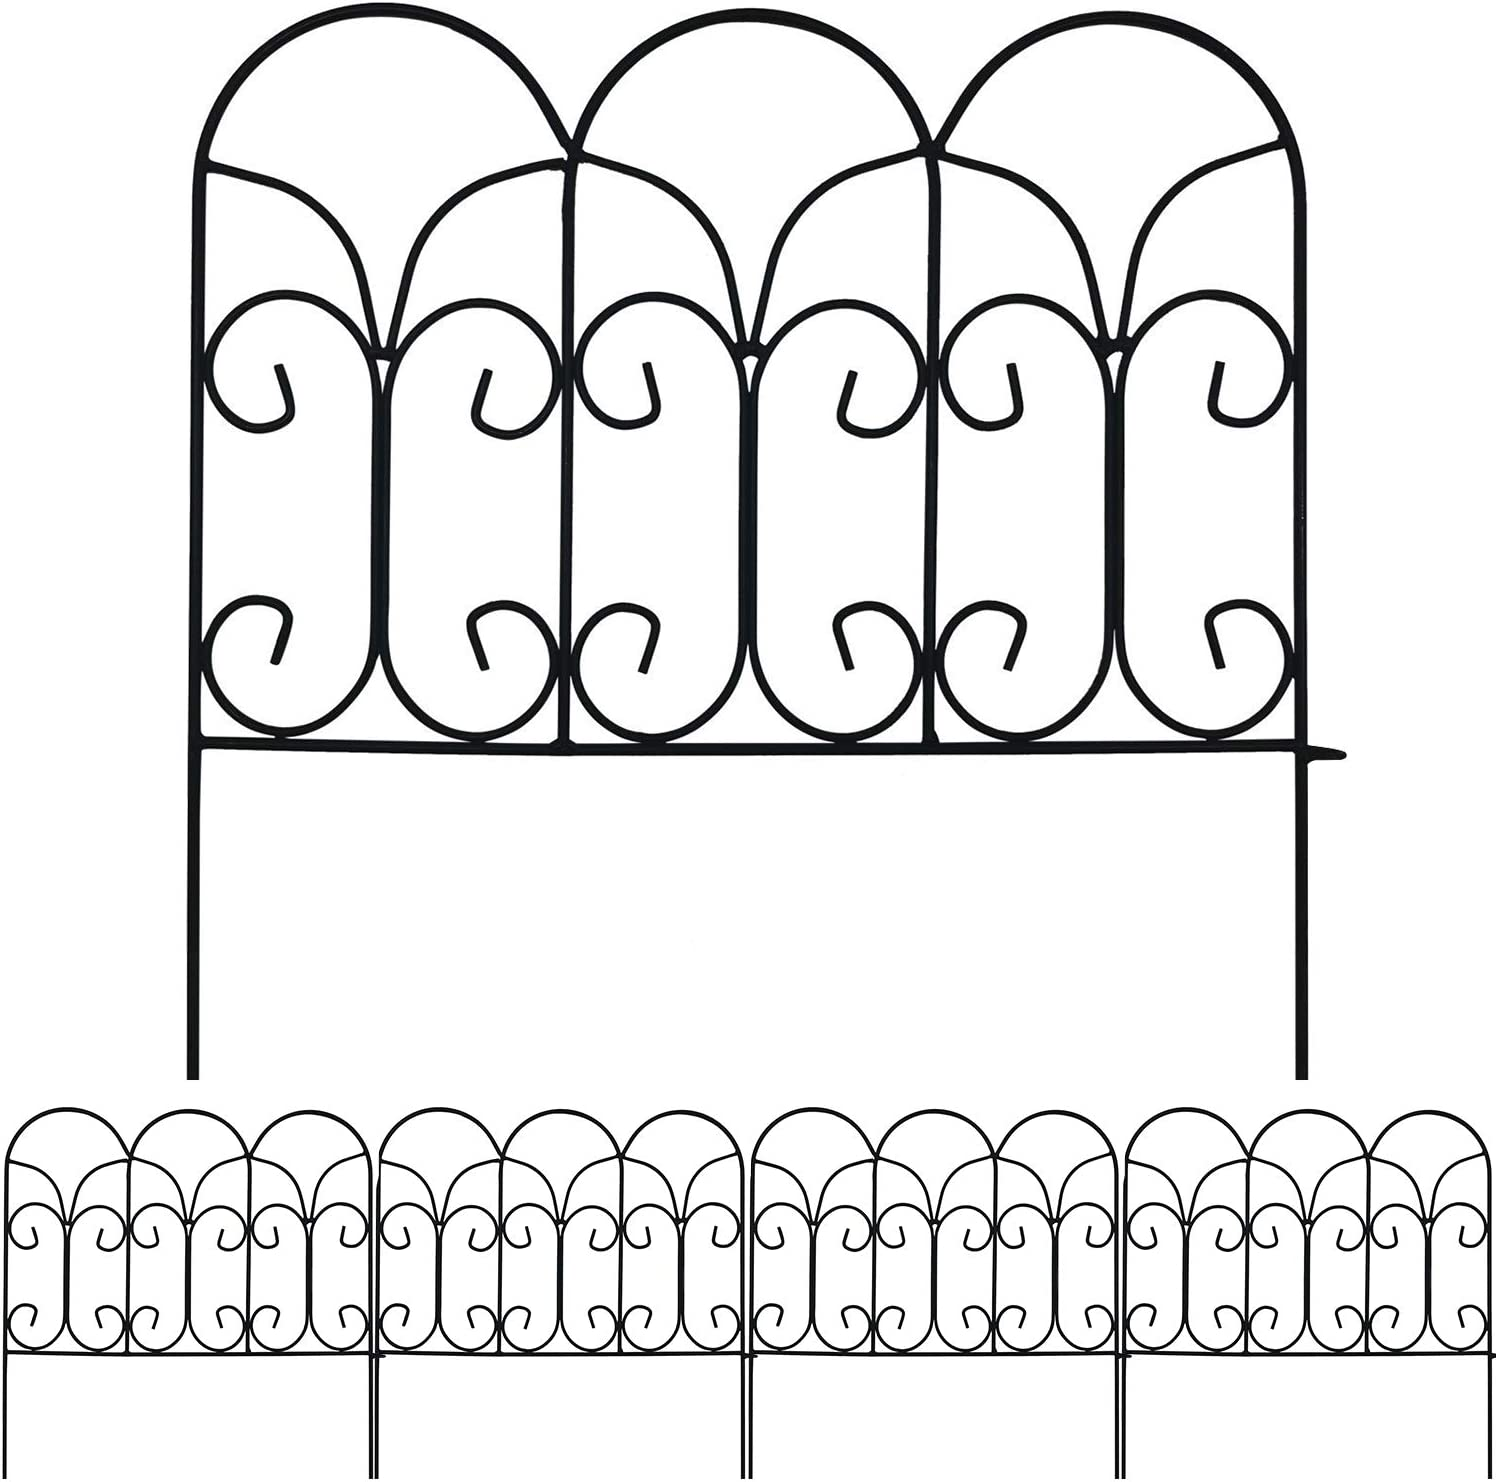 AMAGABELI GARDEN & HOME Decorative Garden Fence GFP004 18in x 7.5ft Coated Metal Outdoor Rustproof Landscape Wrought Iron Wire Border Fencing Folding Patio Fencing Flower Barrier Section Panel Decor